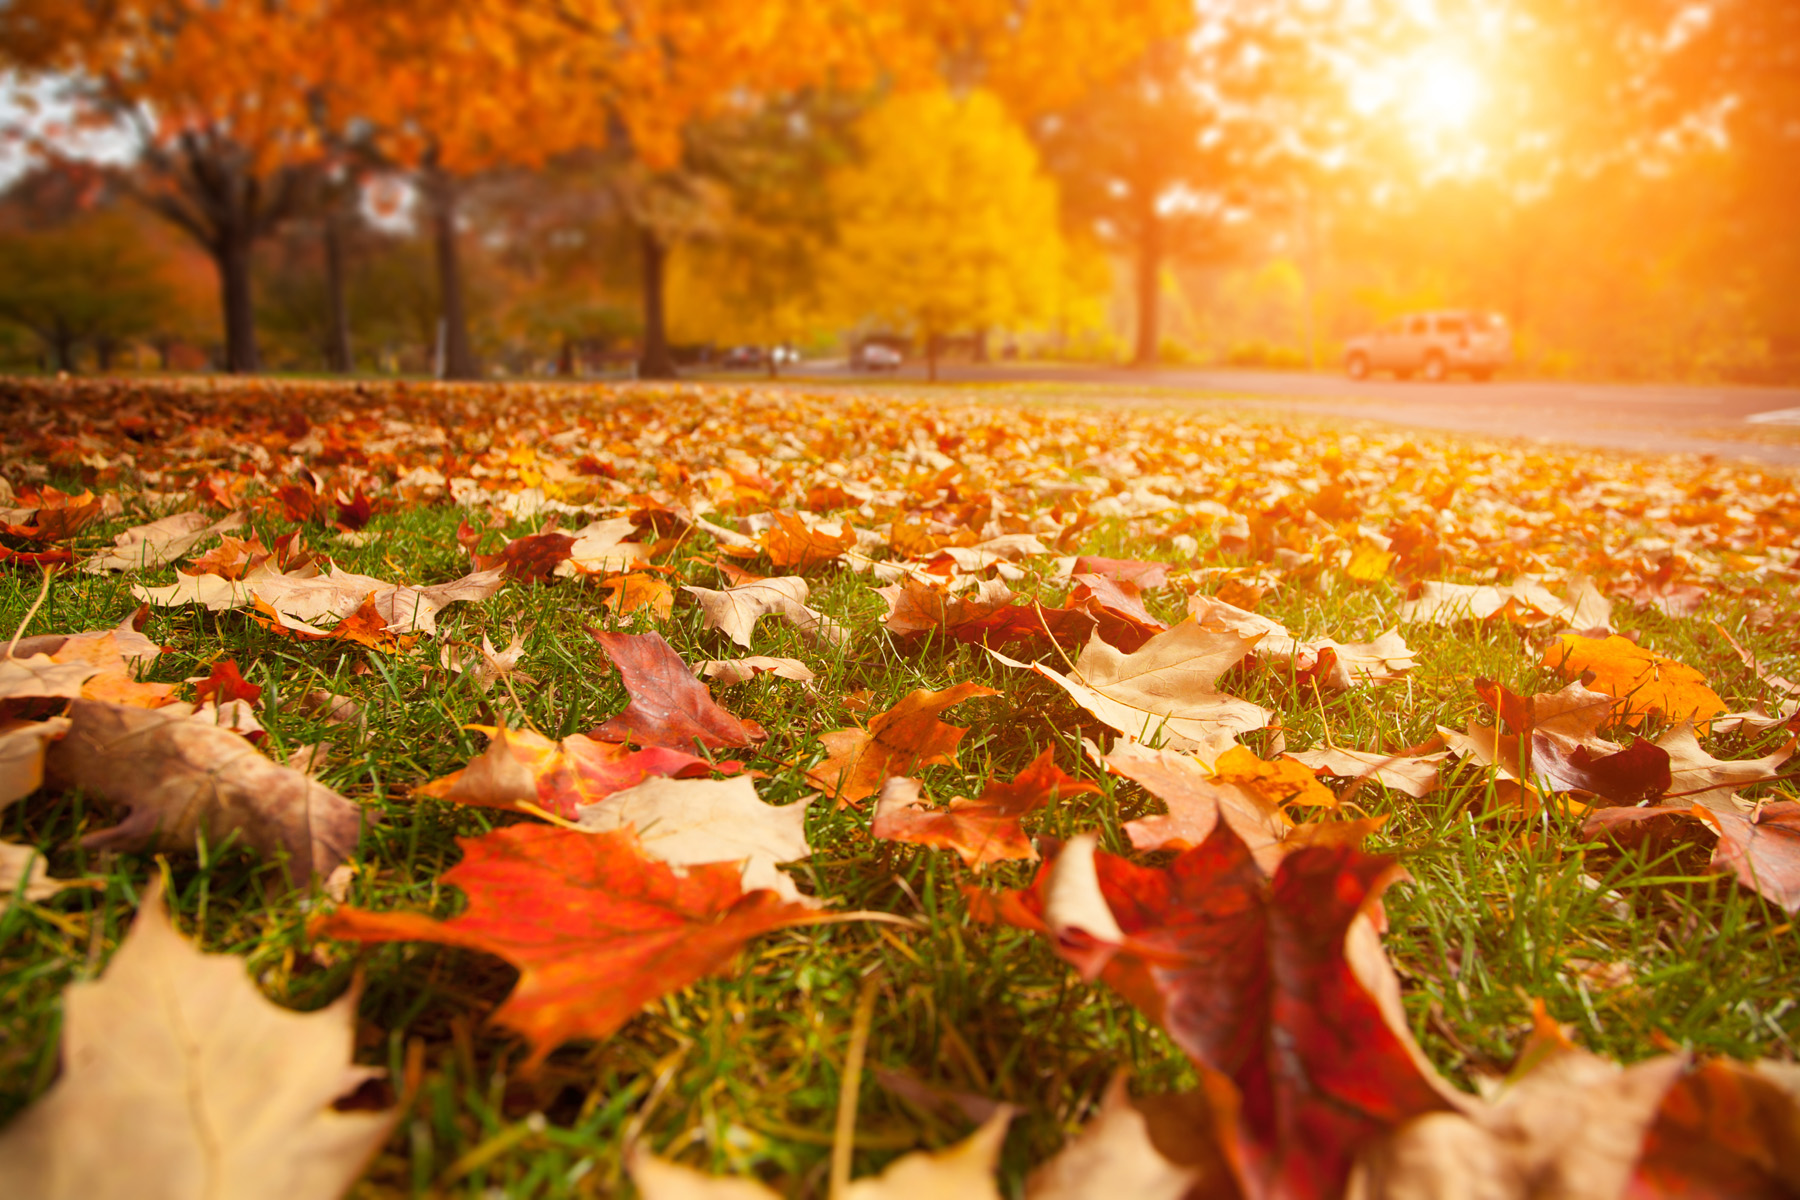 On the grass in the fall leaves 52389